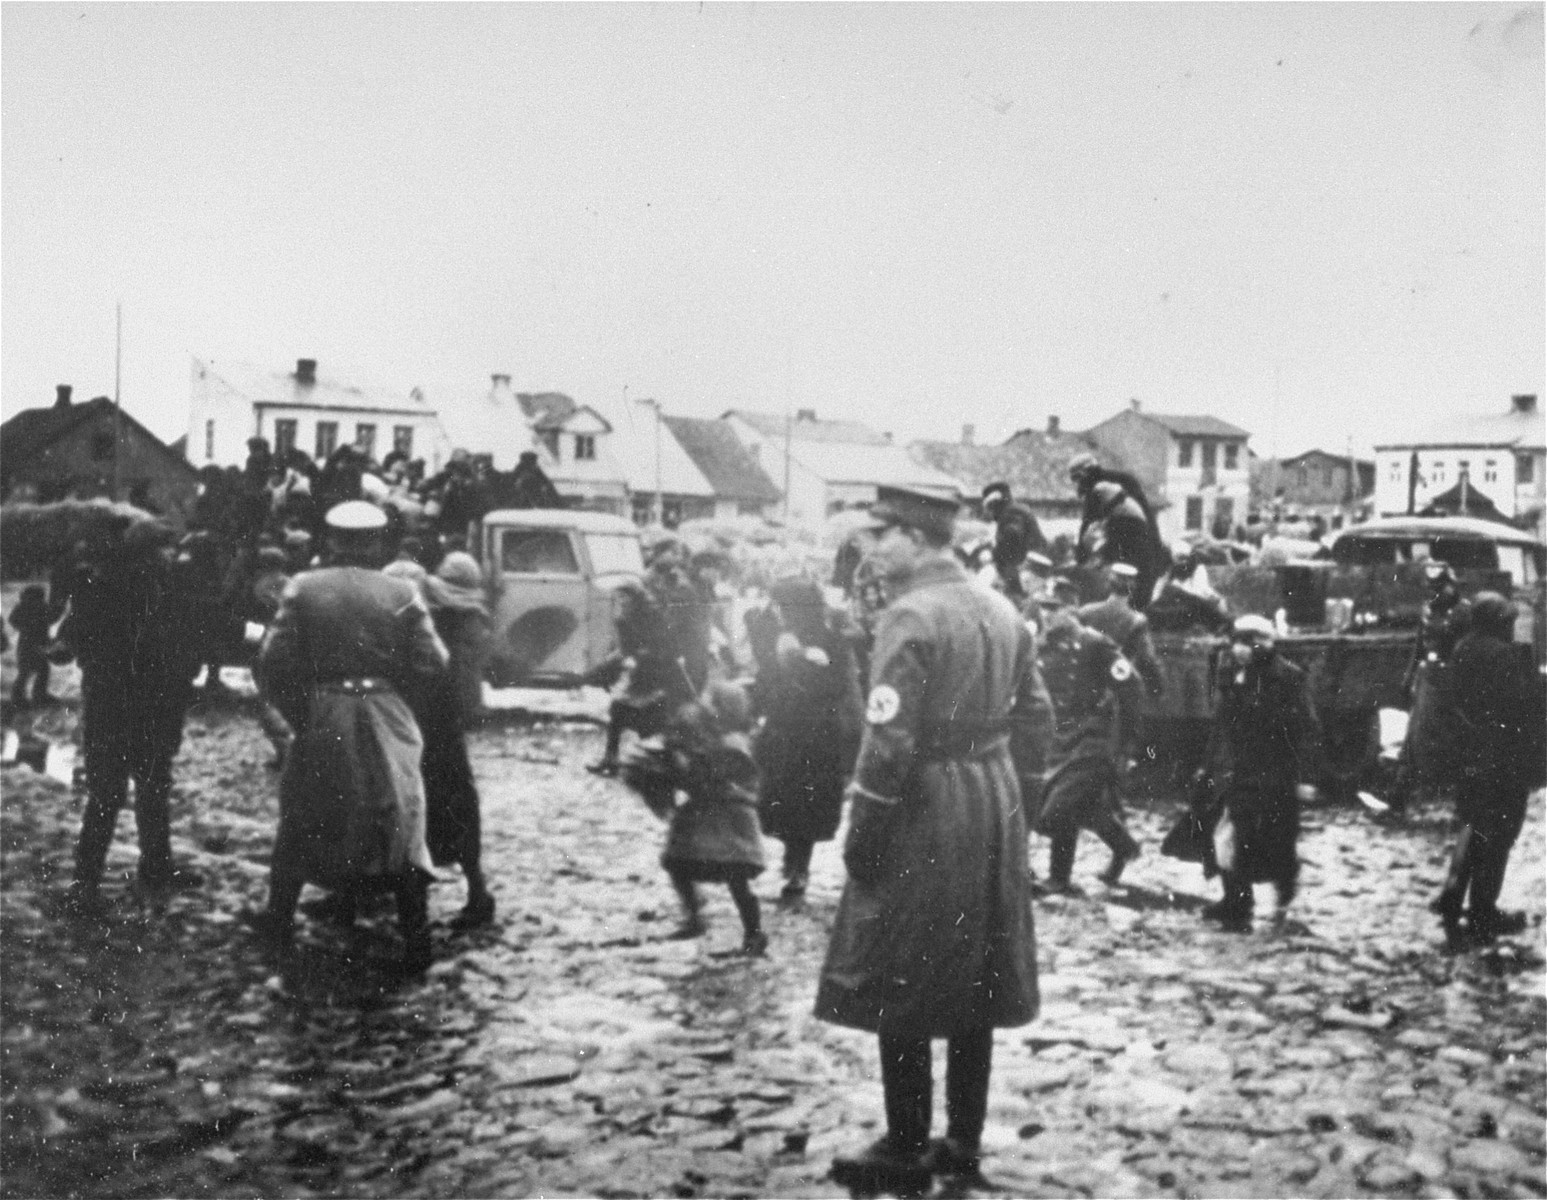 German police round-up Jews and load them onto trucks in the Ciechanow ghetto.